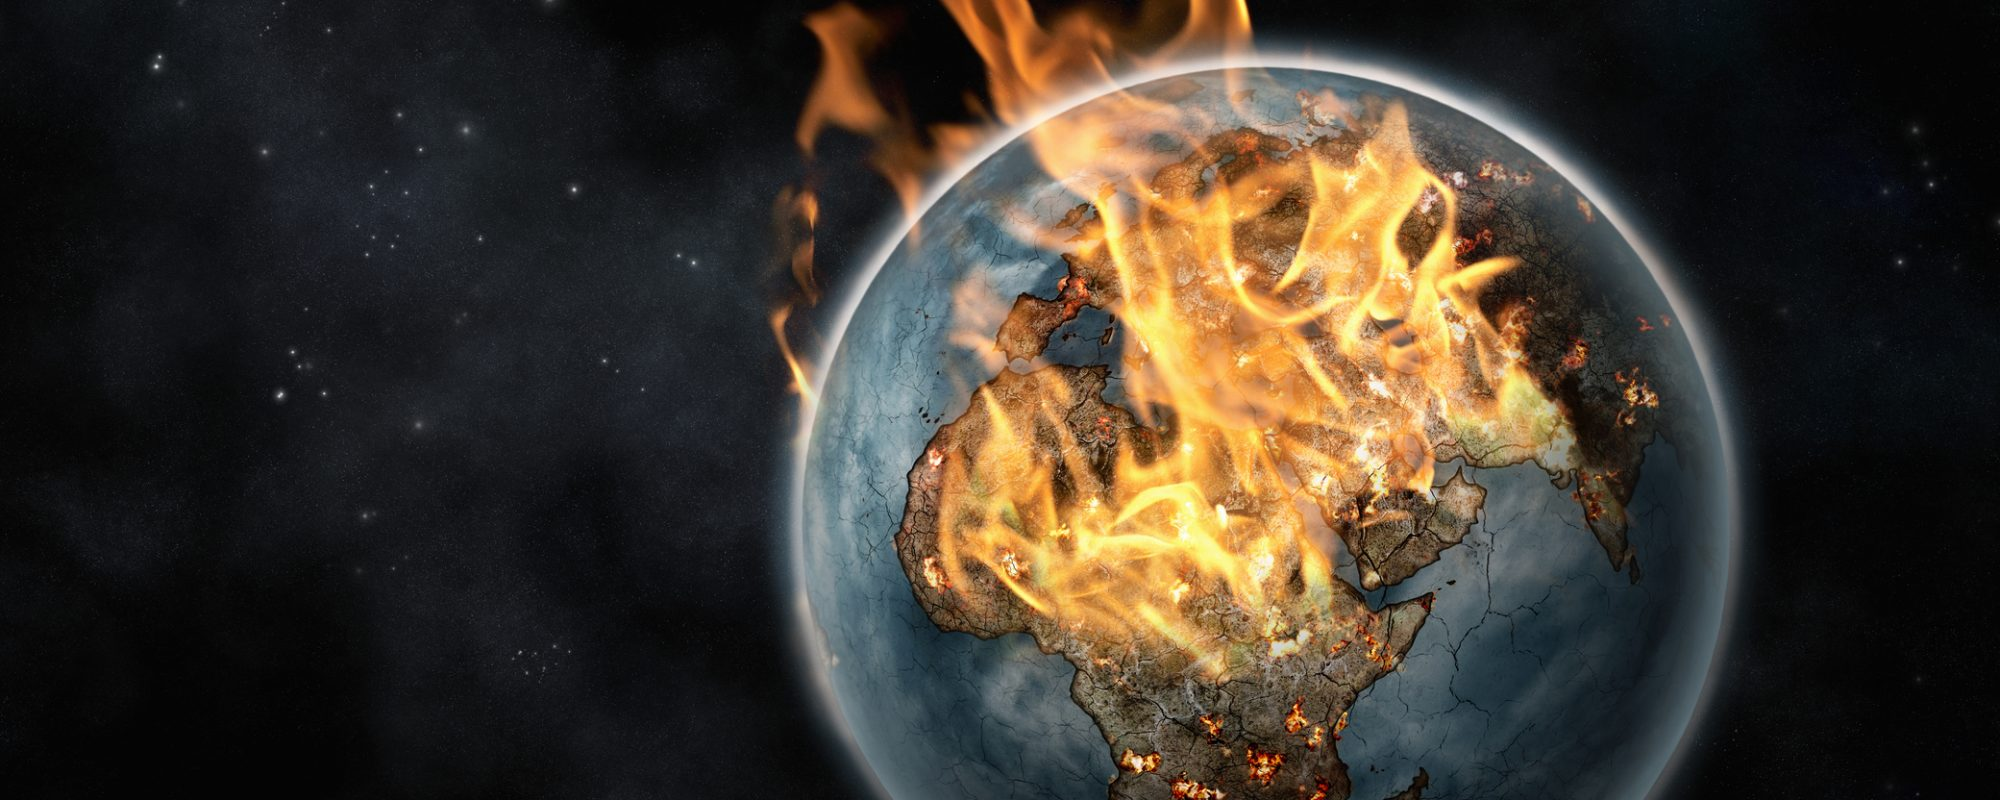 Digitally created image of the planet Earth erupting in flames viewed from space against a digitally created starry background. Africa, Europe and India are prominent beneath the flames. All photographic material in the image is original and has been created by me, Nick White and I have provided a release for that if it is necessary. The outline of the countries is hand drawn.